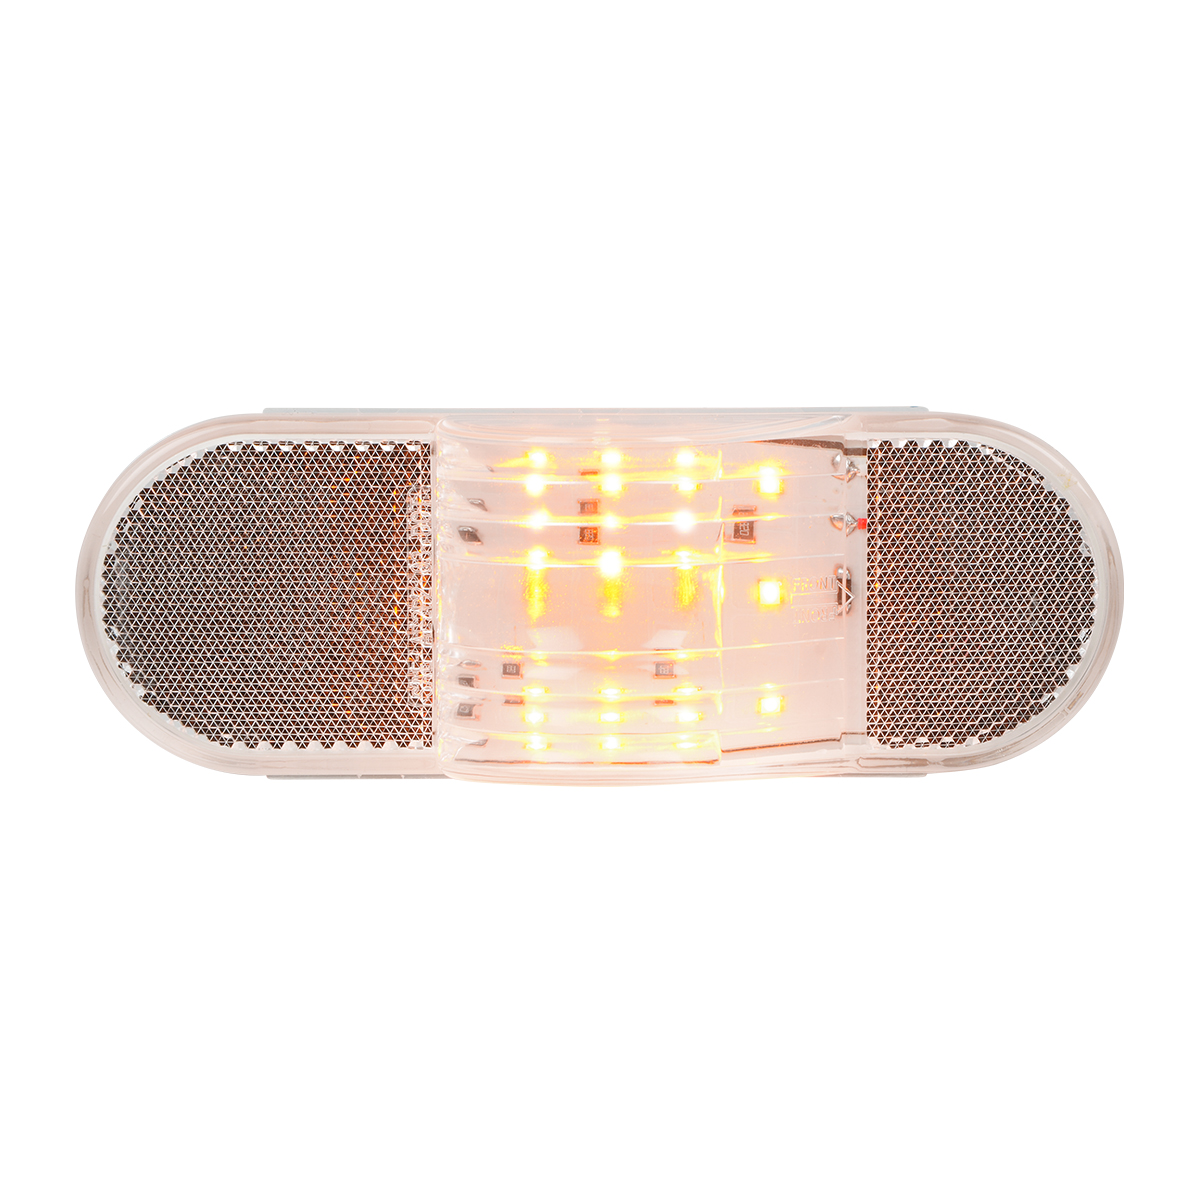 79996 Oval Side Marker & Turn 12 LED Light w/ Reflector